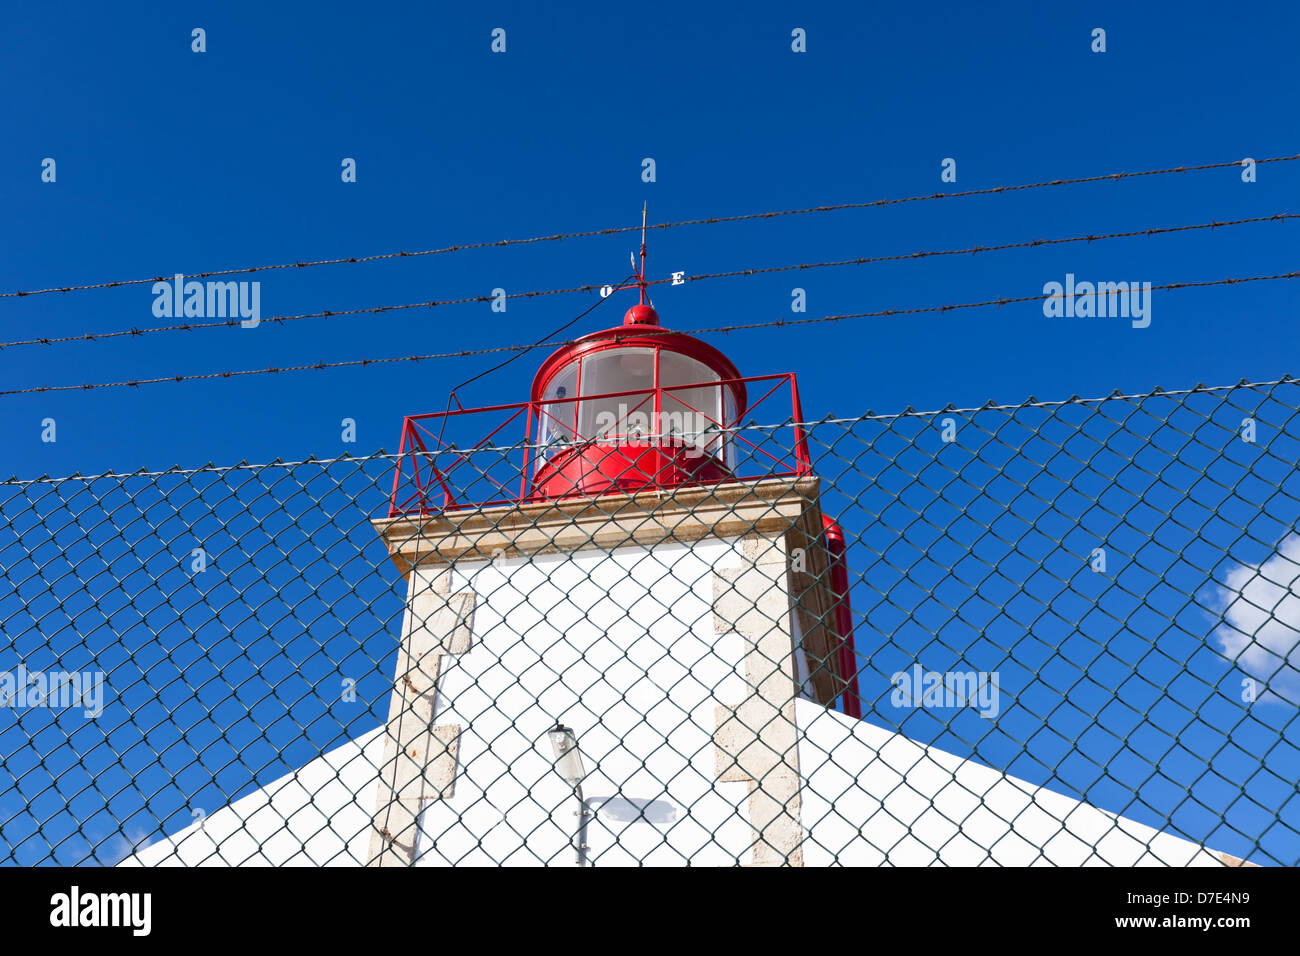 Bright Lighthouse beyond chain link fence against Blue Sky Background - Stock Image